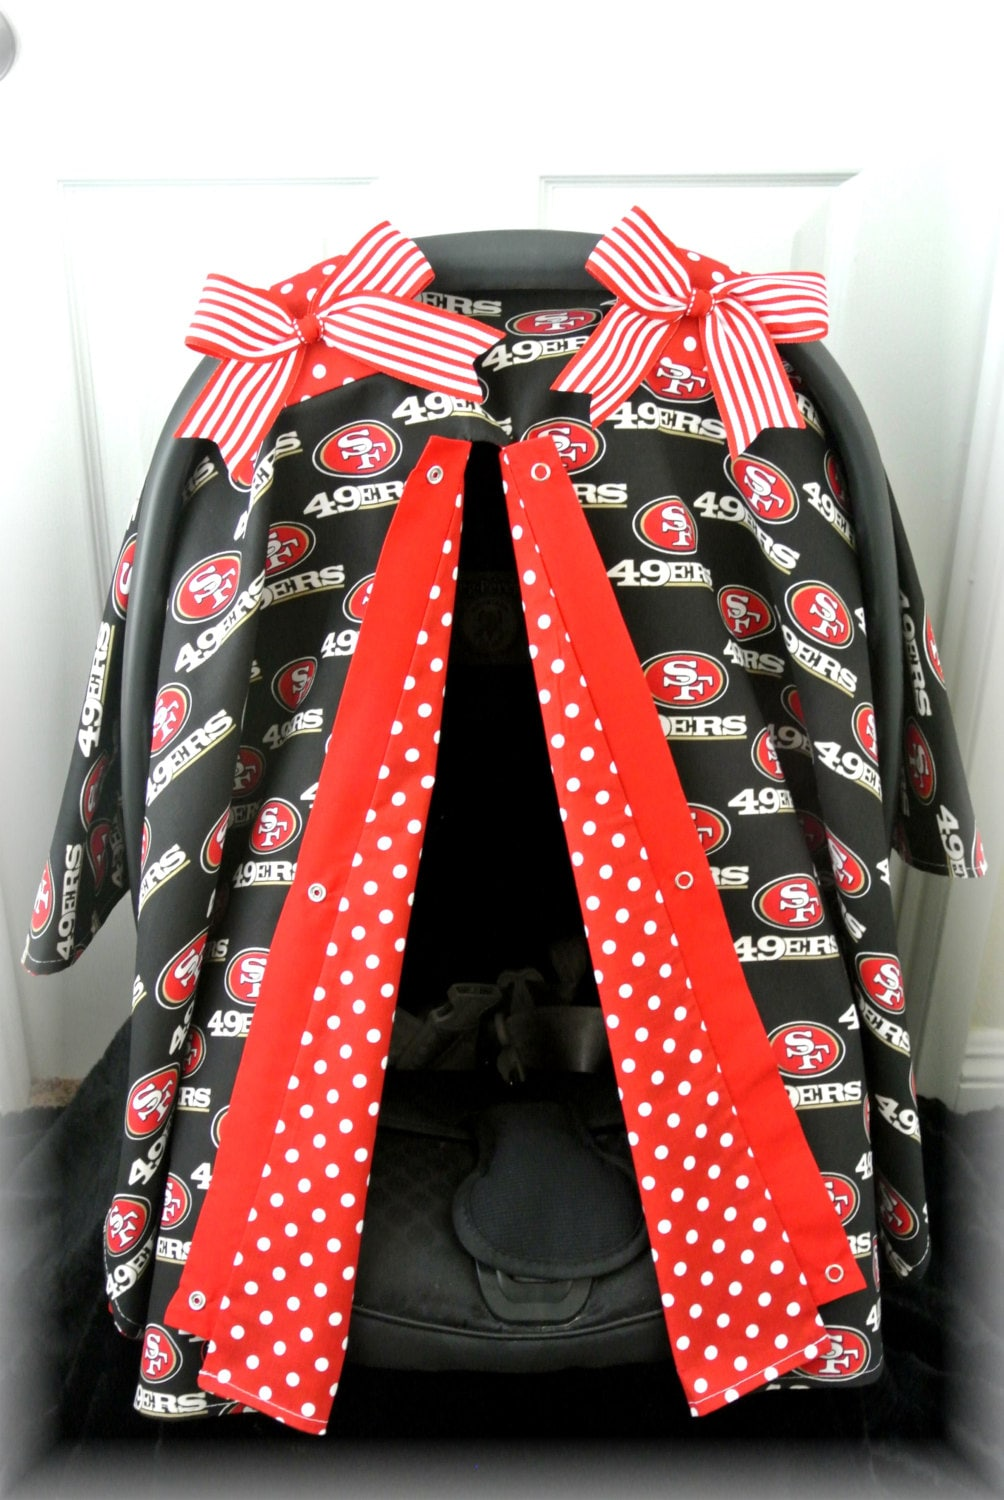 49ers Seat Covers Car Seat Canopy Car Seat Cover 49ers Red